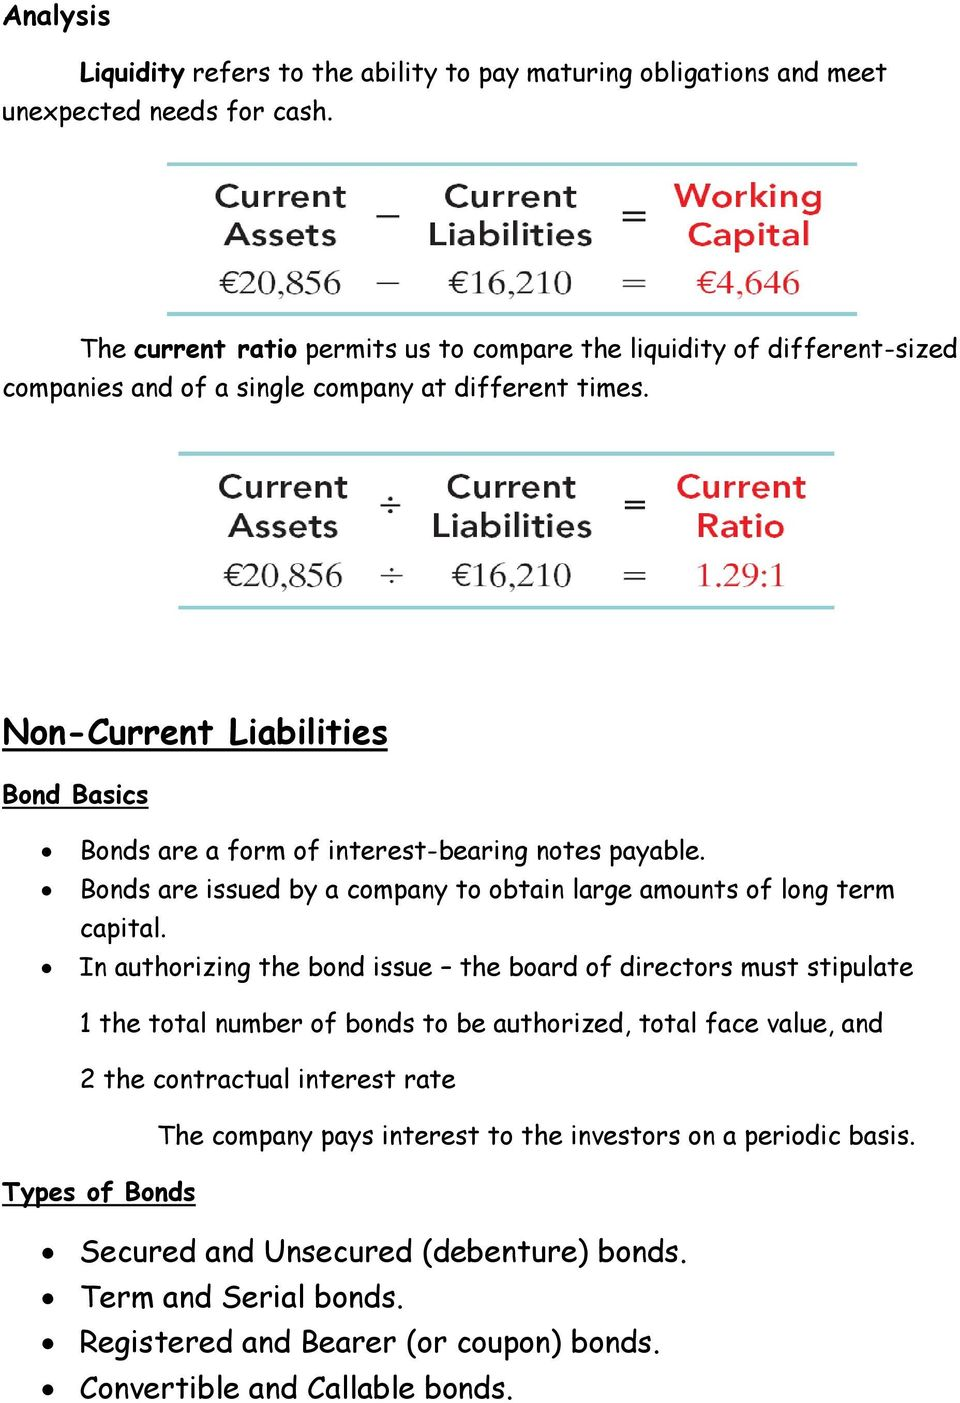 Non-Current Liabilities Bond Basics Bonds are a form of interest-bearing notes payable. Bonds are issued by a company to obtain large amounts of long term capital.